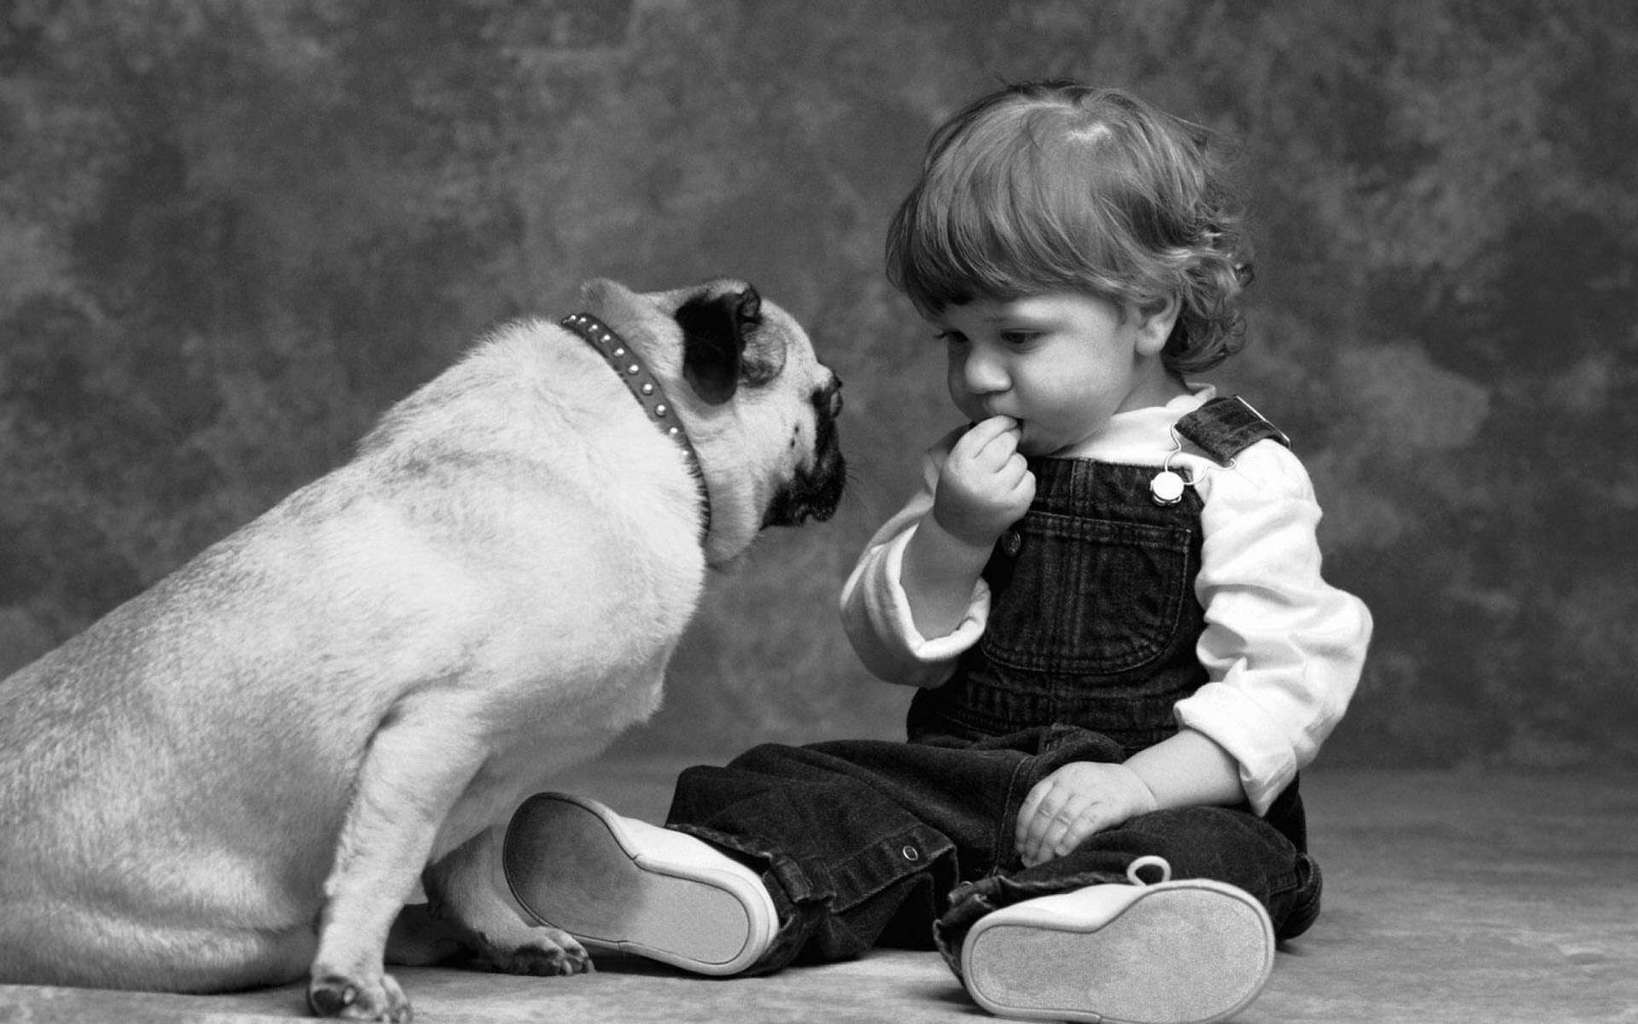 Dog-and-baby-friendship-wallpapers